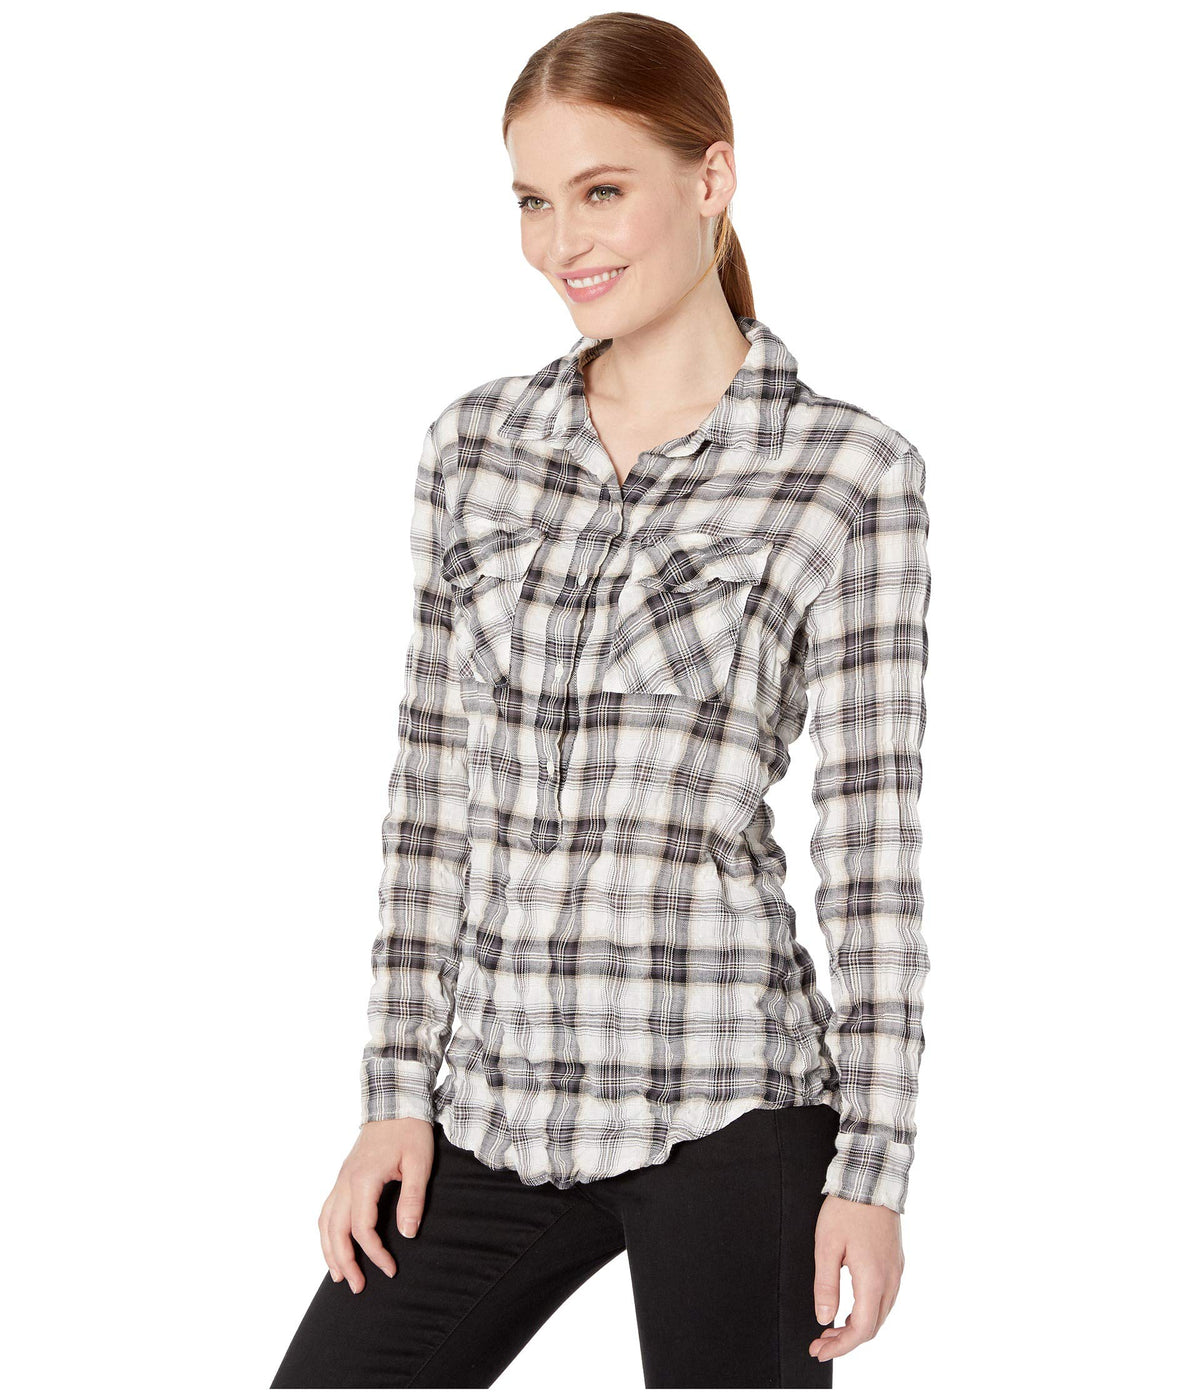 Claid in Plaid Pullover Shirt